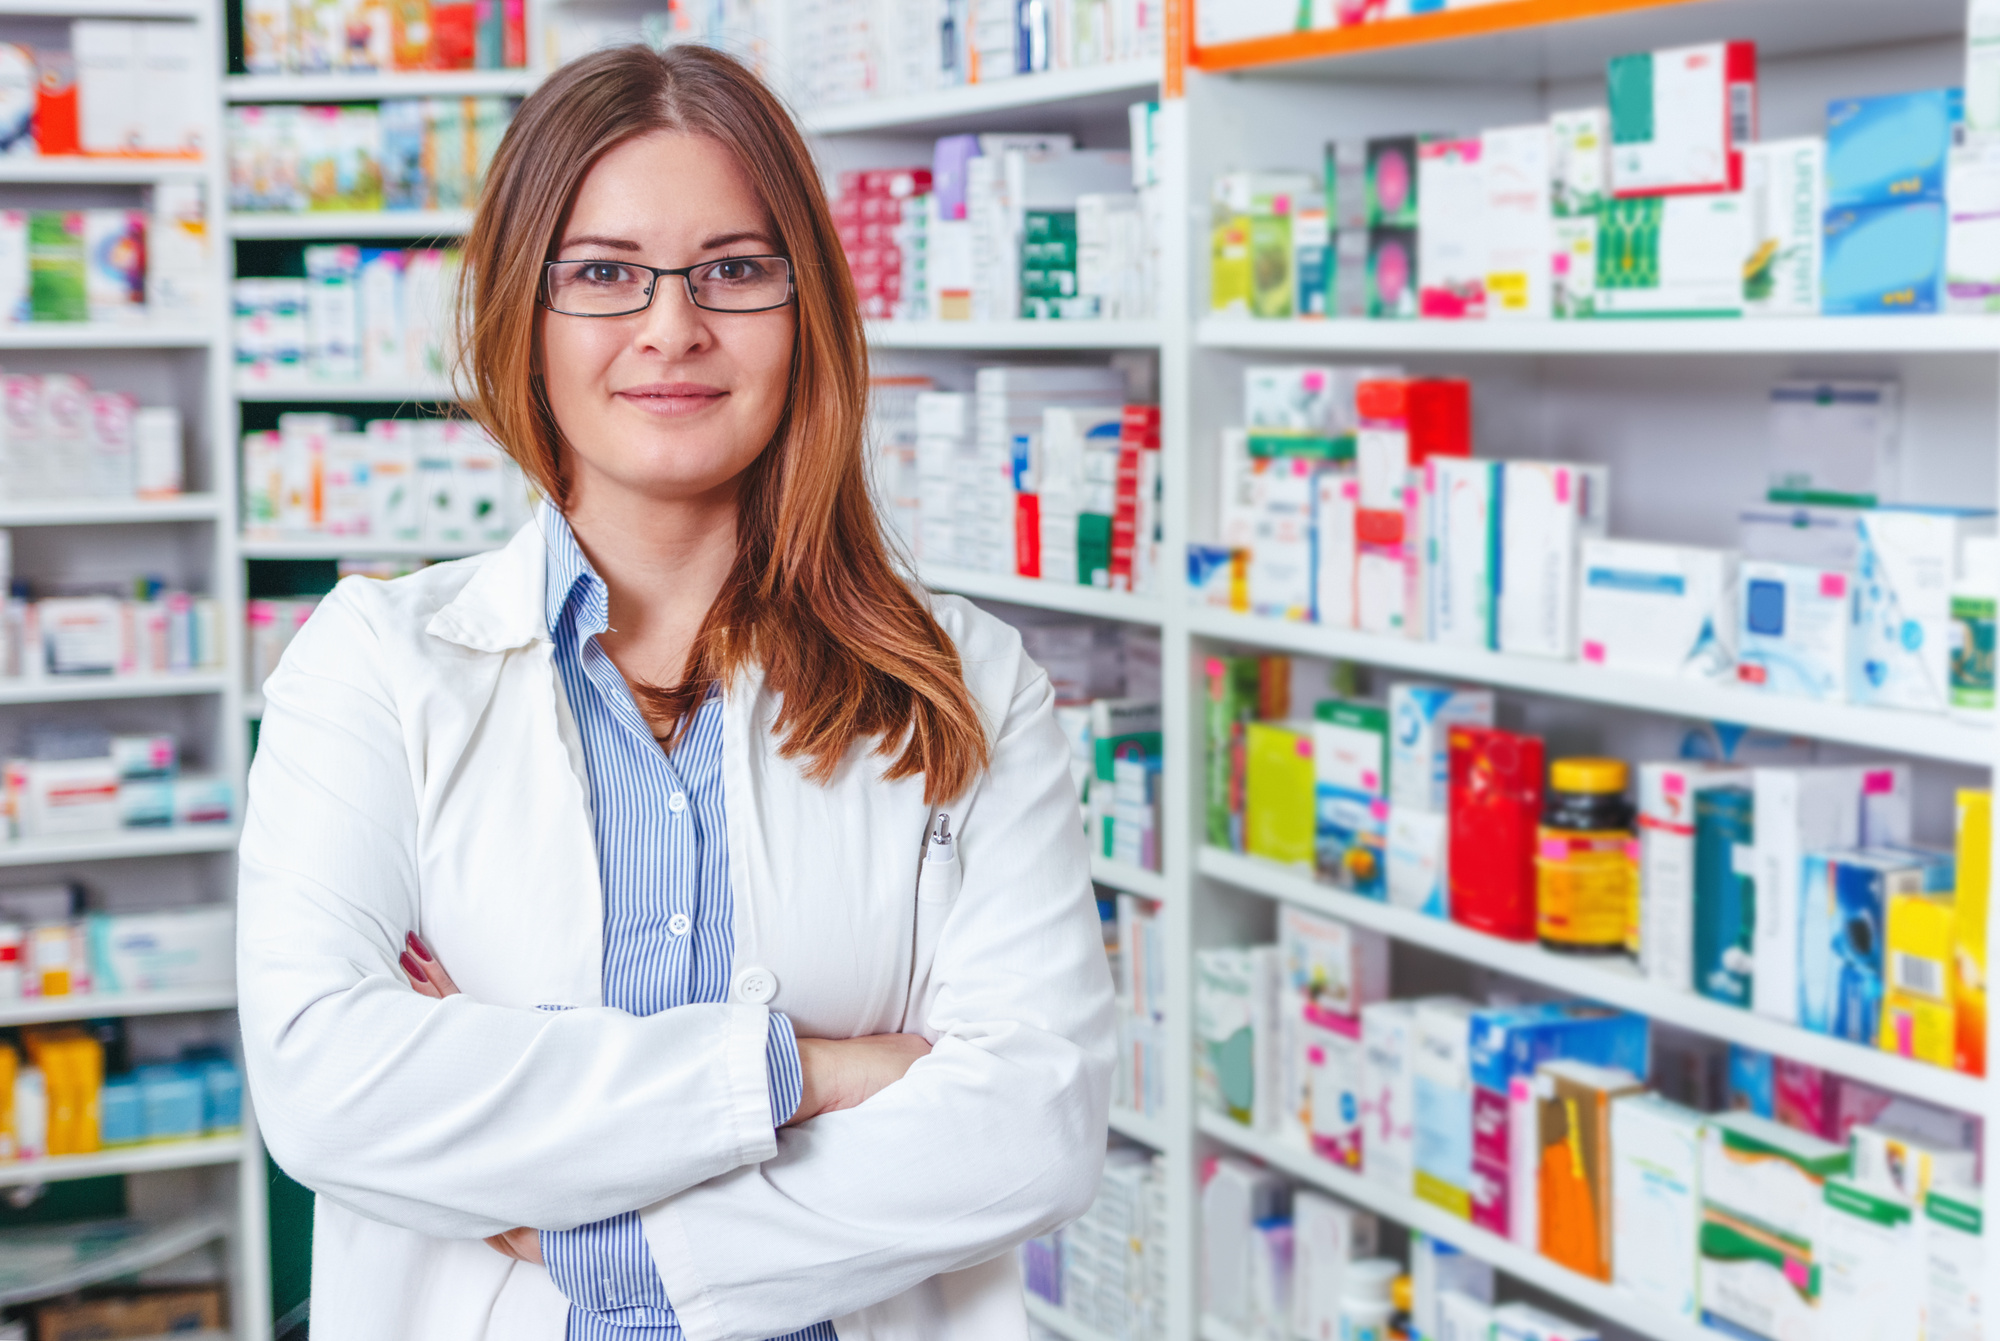 Are you looking for a safe and legal online pharmacy? Read our guide to learn what you should consider when ordering medications online.